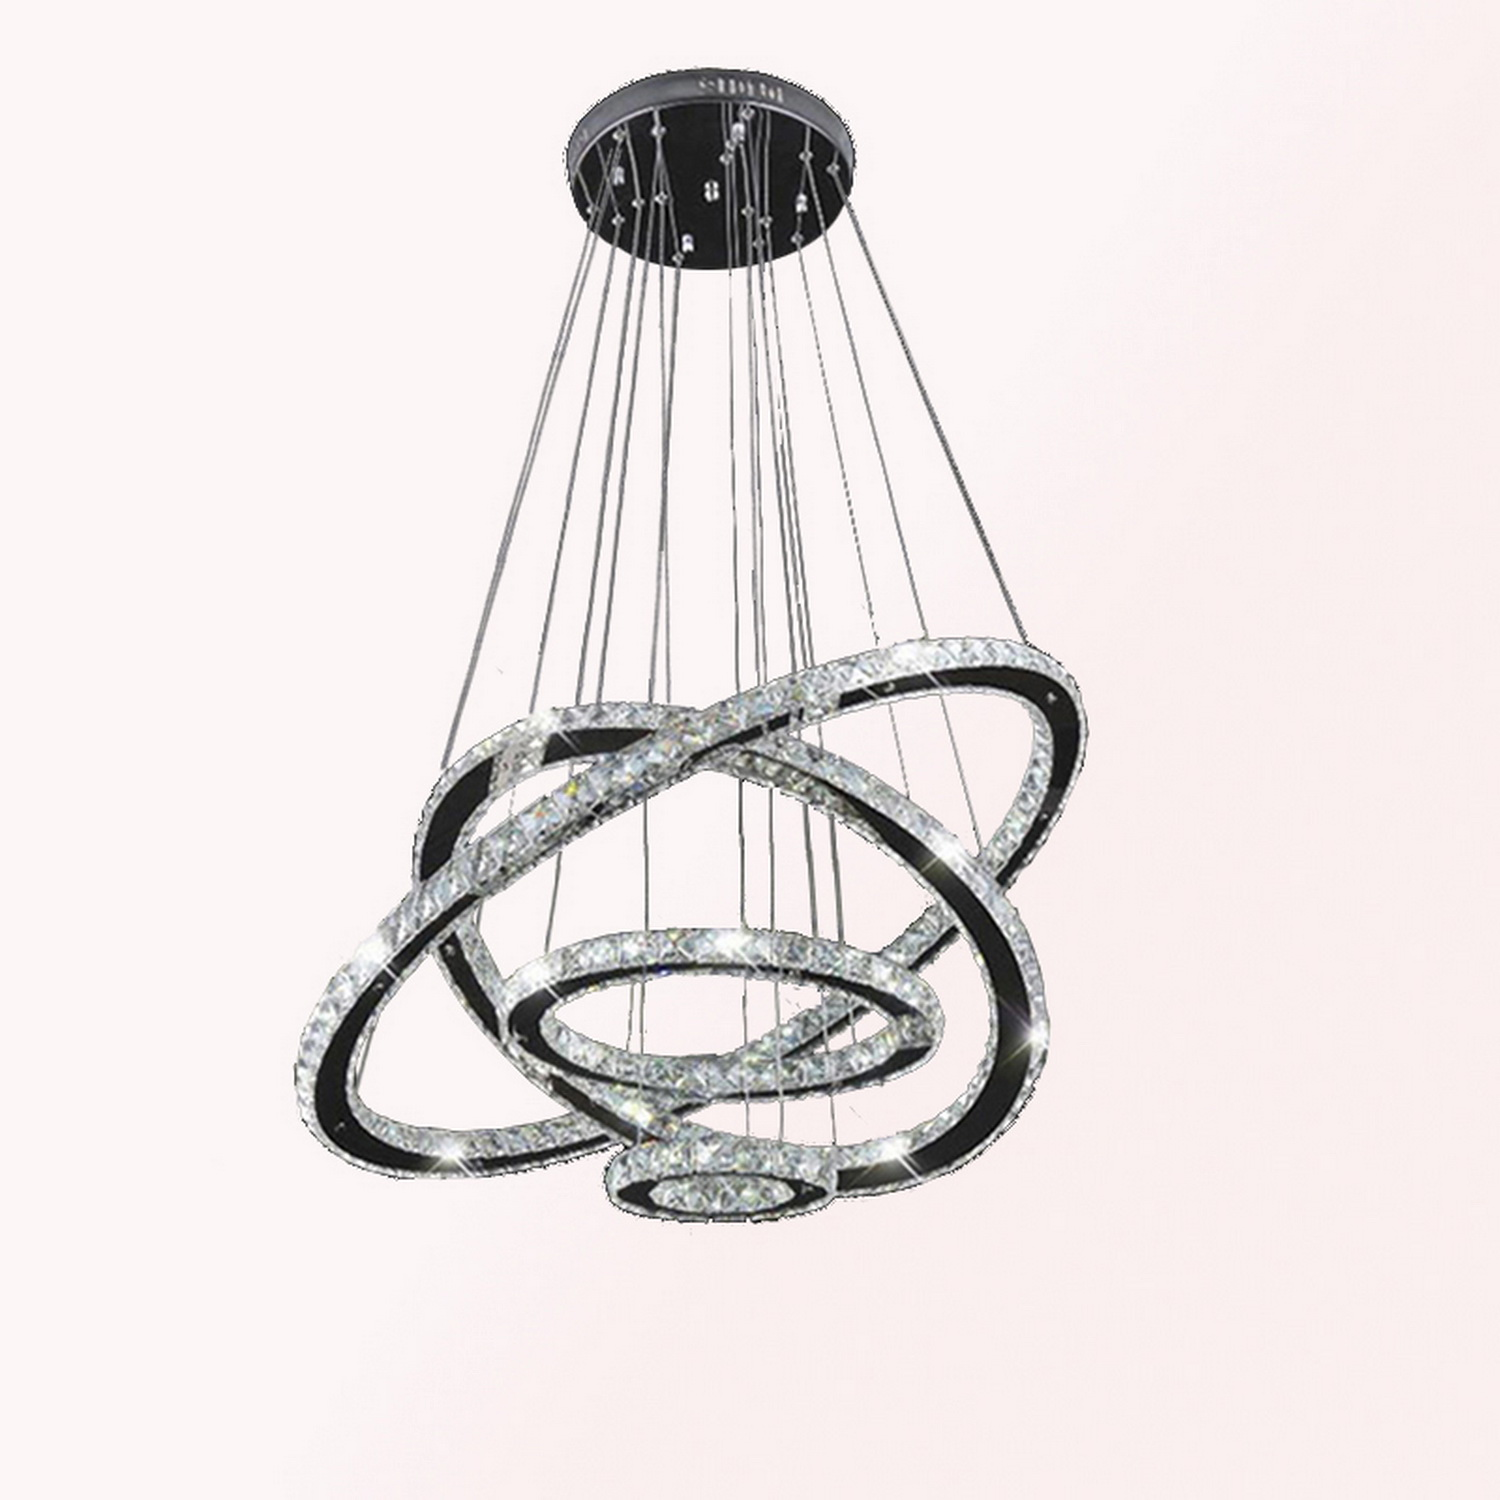 Led Lamp Fixture: Modern Galaxy Crystal Chandelier LED Lighting Fixture